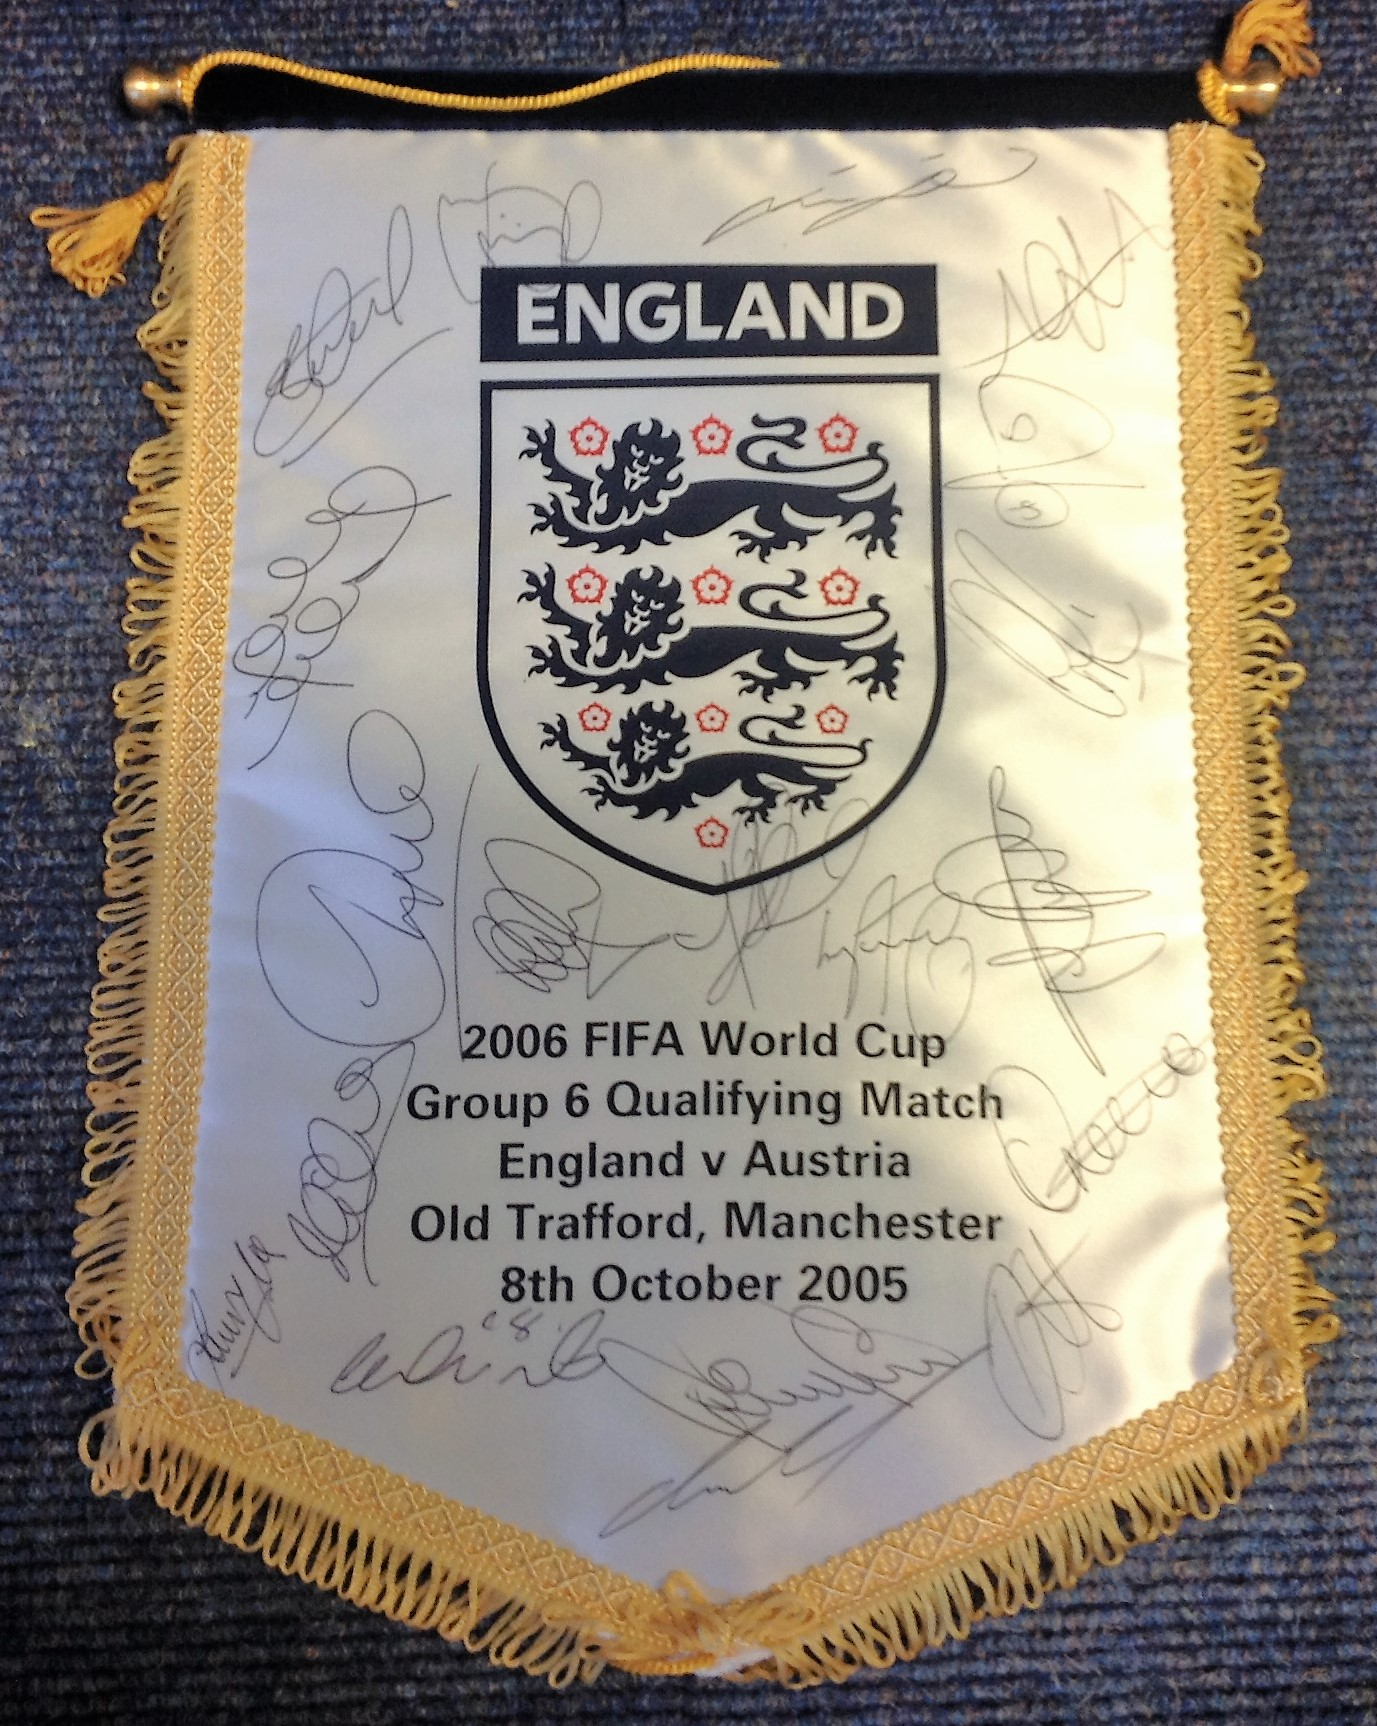 Lot 55 - Football England commemorative pennant England v Austria Old Trafford 8th October 2005 signed by